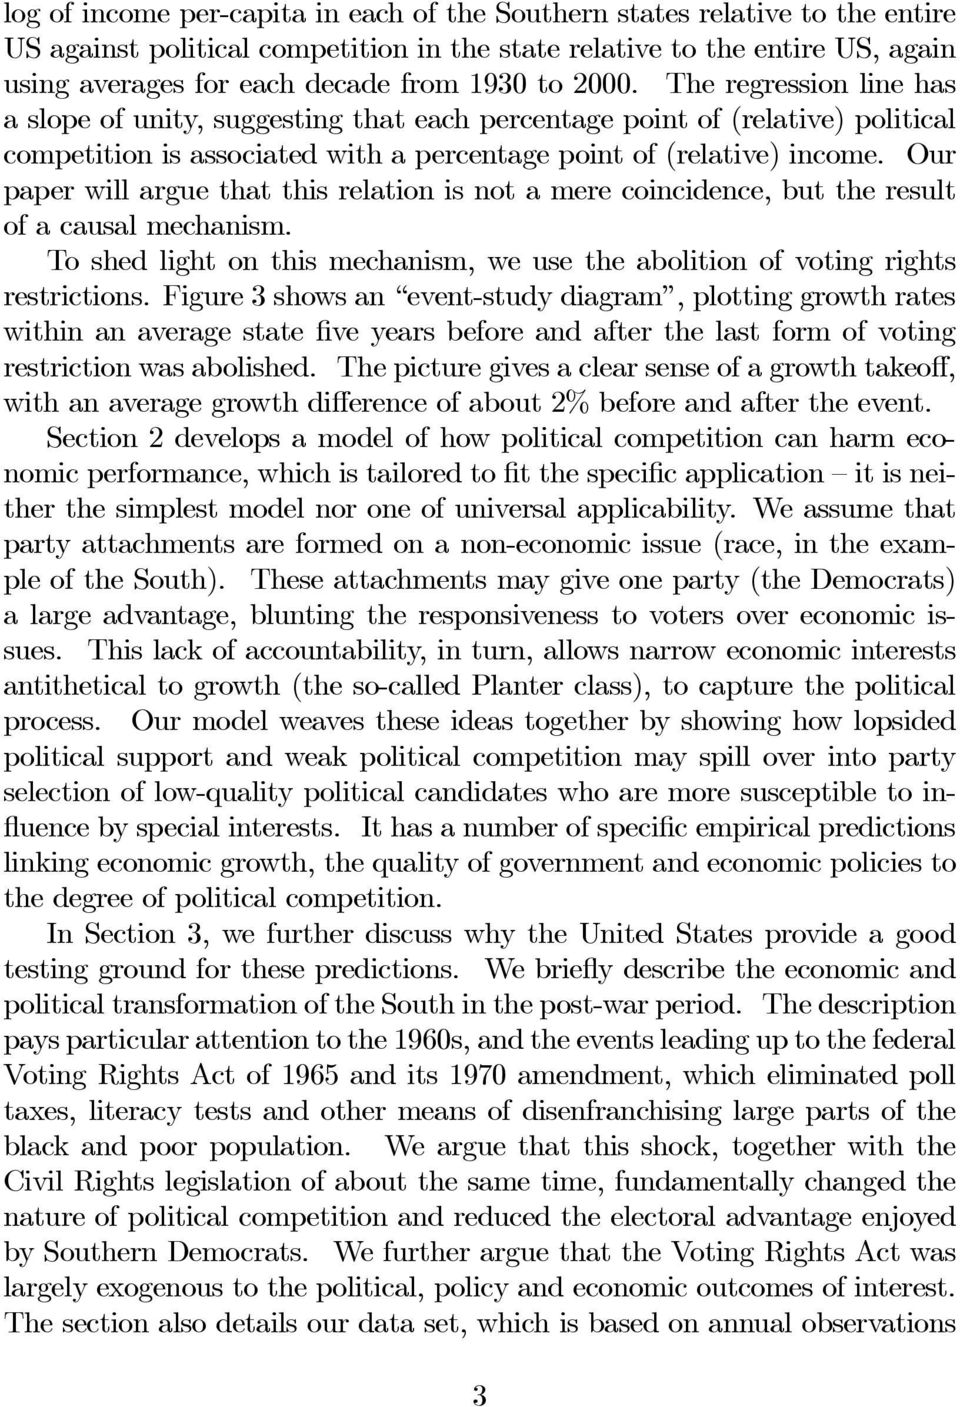 Our paper will argue that this relation is not a mere coincidence, but the result of a causal mechanism. To shed light on this mechanism, we use the abolition of voting rights restrictions.